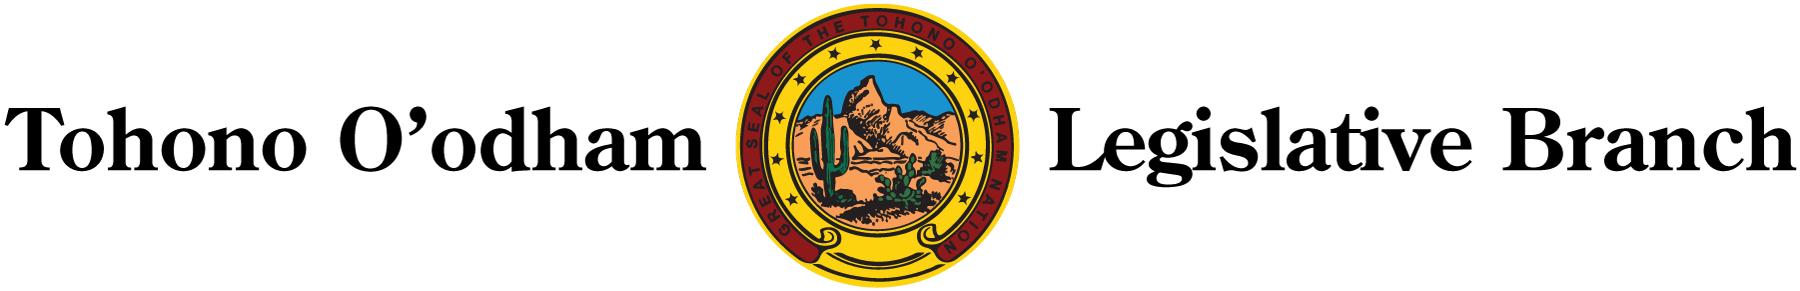 Tohono O'odham Legislative Branch